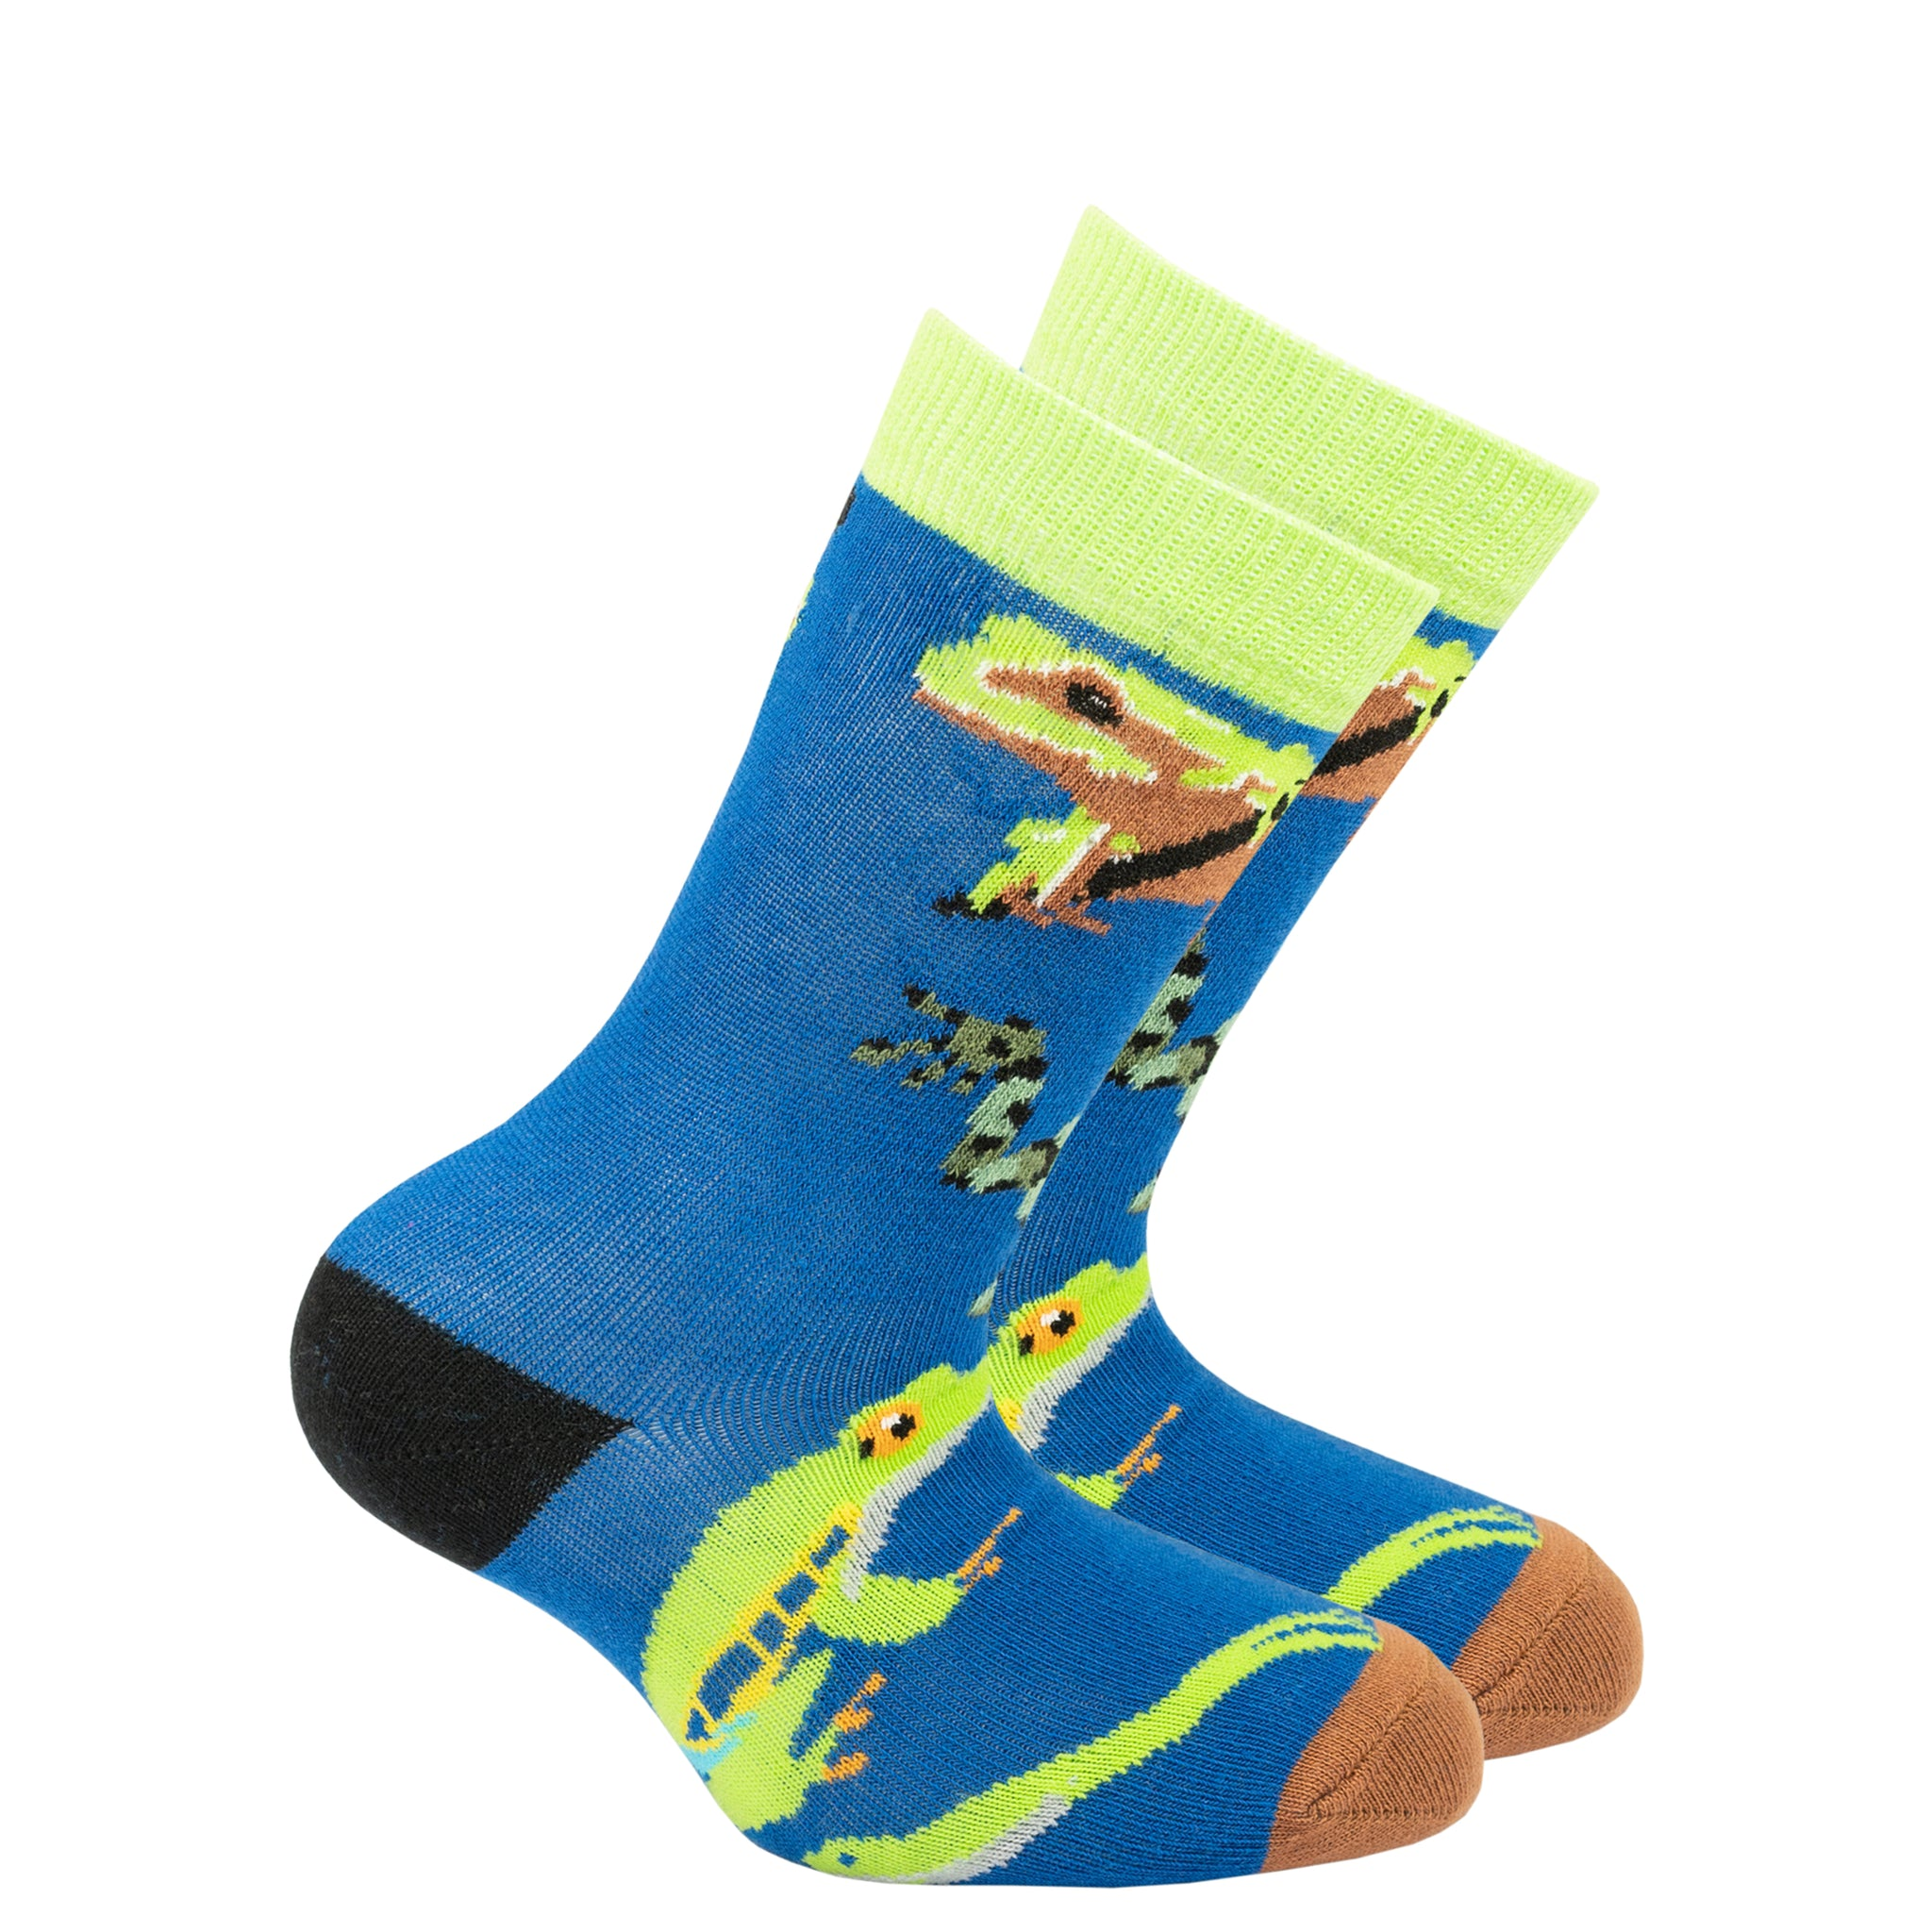 Kids Frog Socks grey and navy